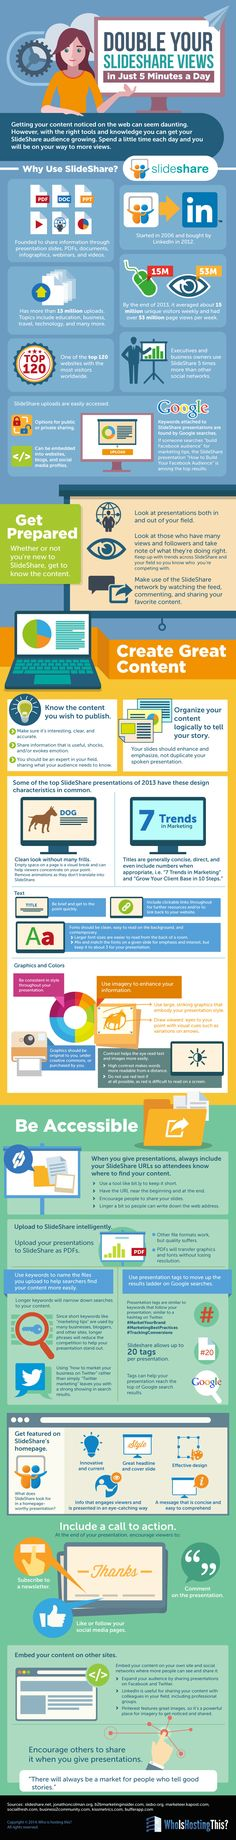 Double Your SlideShare Views in Just 5 Minutes a Day #infographic #SlideShare #SocialMedia